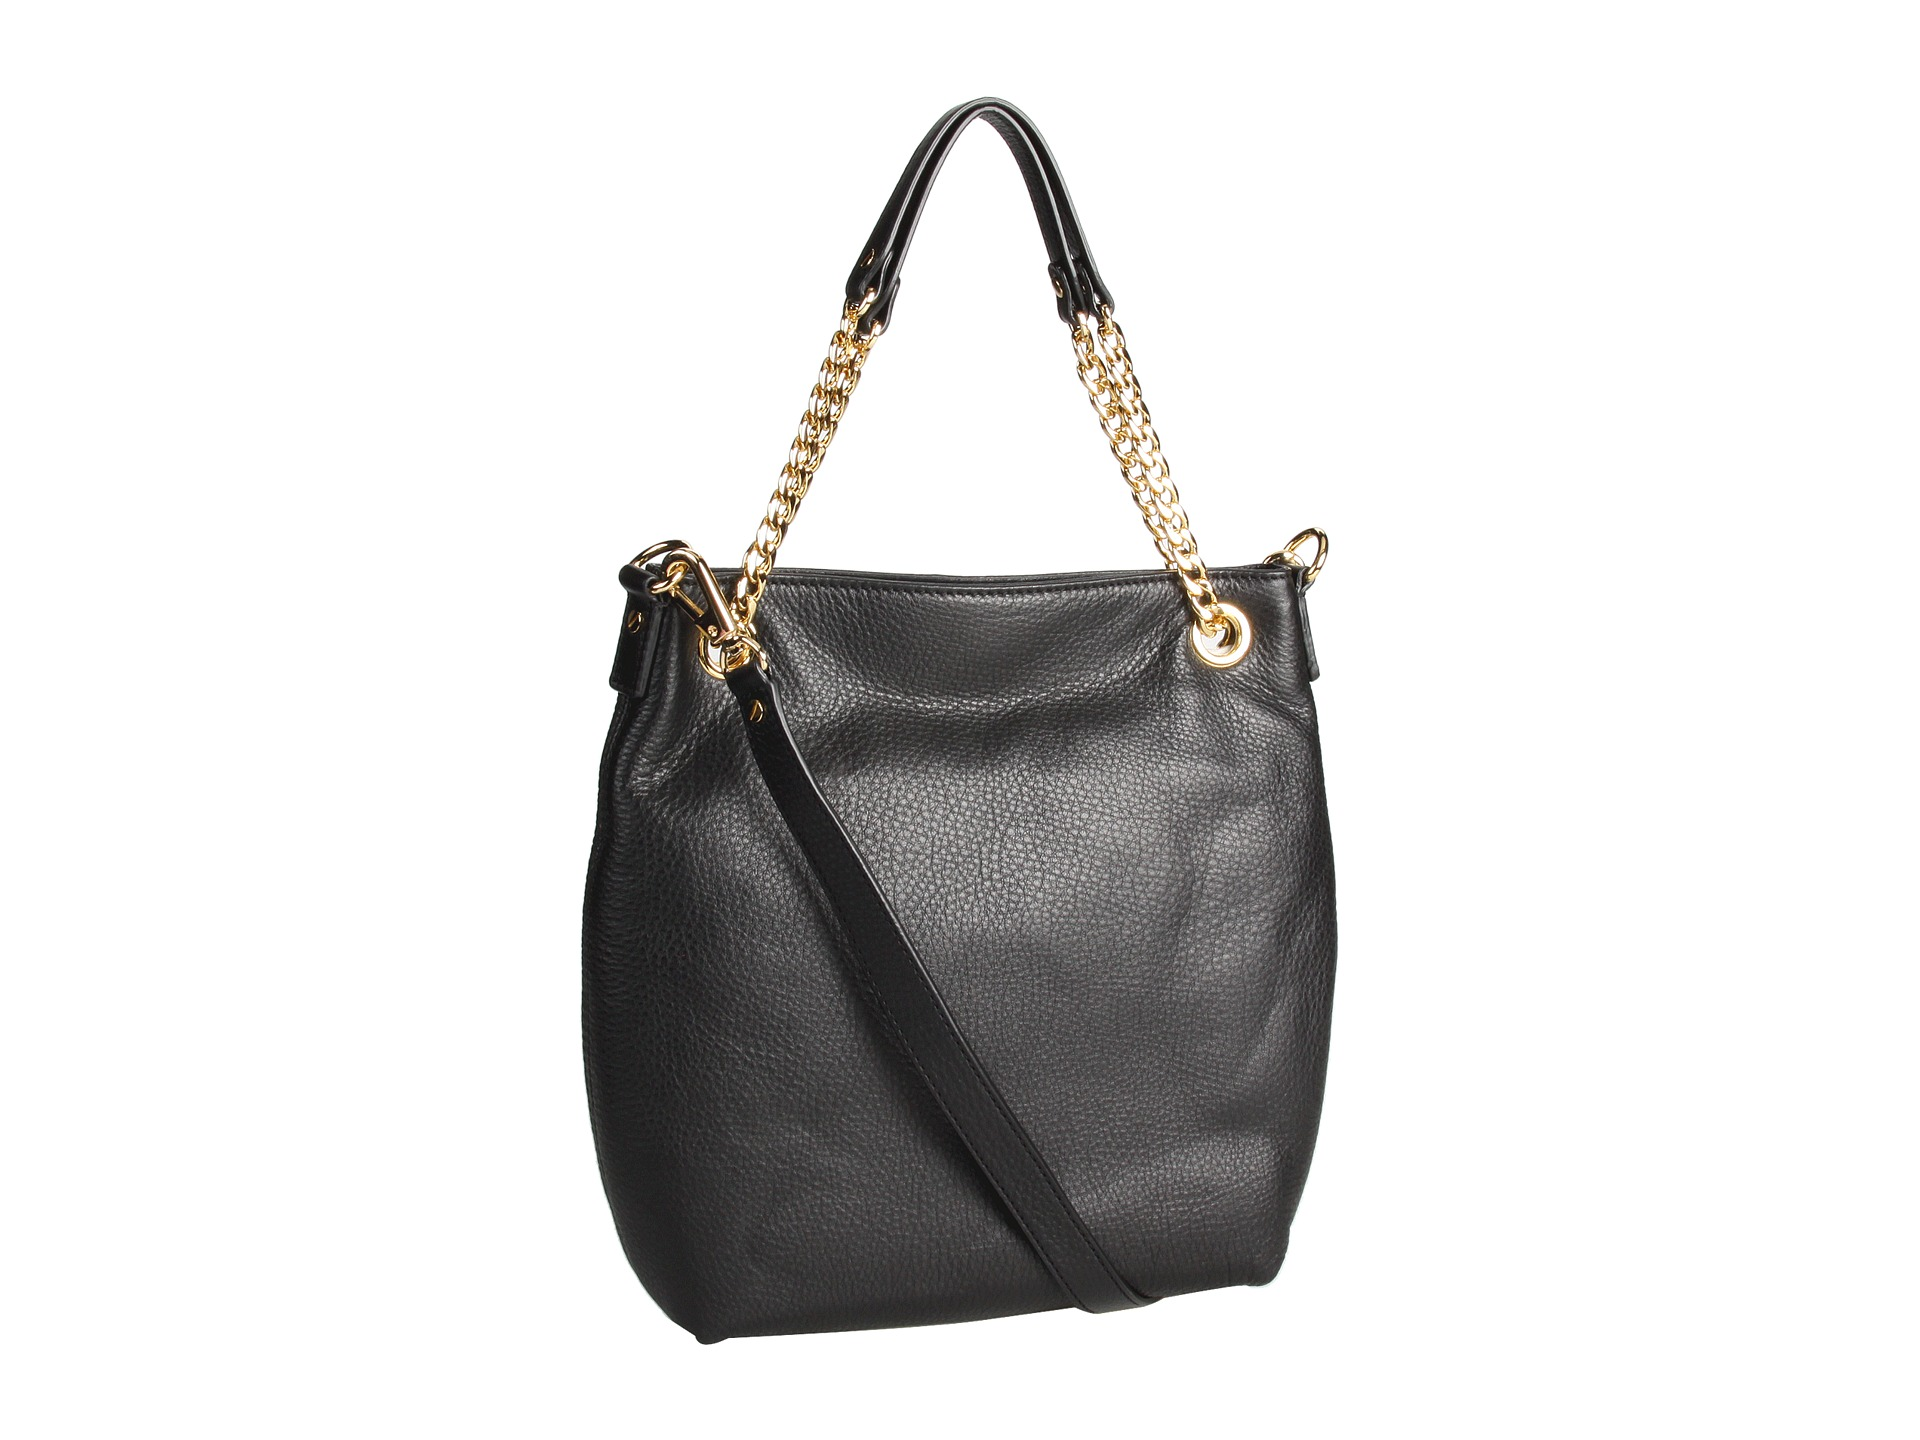 Wholesale Handbags, Fashion Handbags, Purses, Wallets, Clutches. Onsale Handbag is a leading supplier of high quality wholesale handbags. By importing directly from manufacturers, we offer unbelievably low prices on the latest trending handbags and fashion accessories.